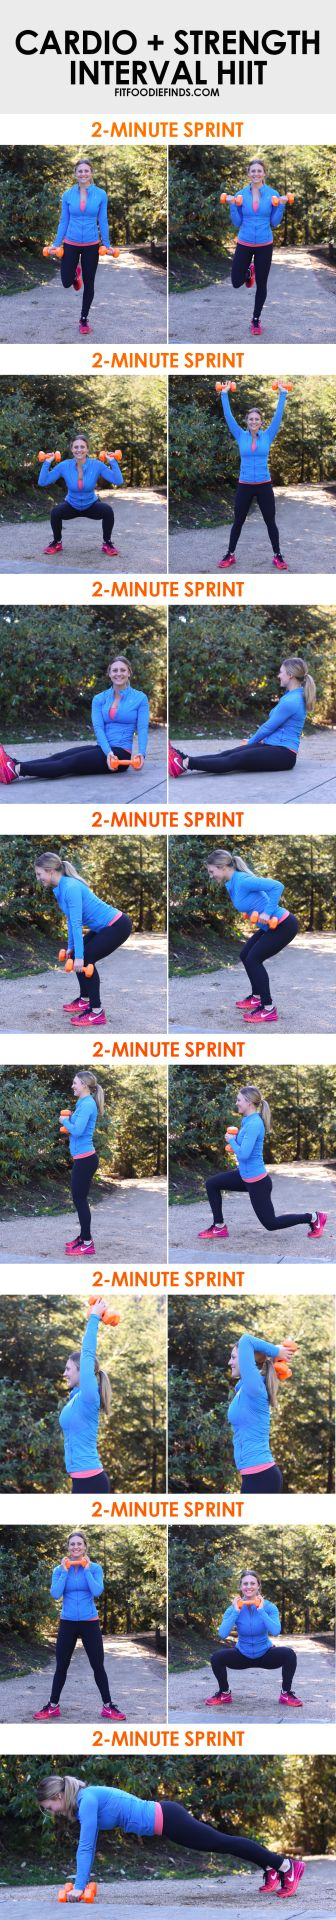 (via Cardio + Strength Interval HIIT Workout - Fit...